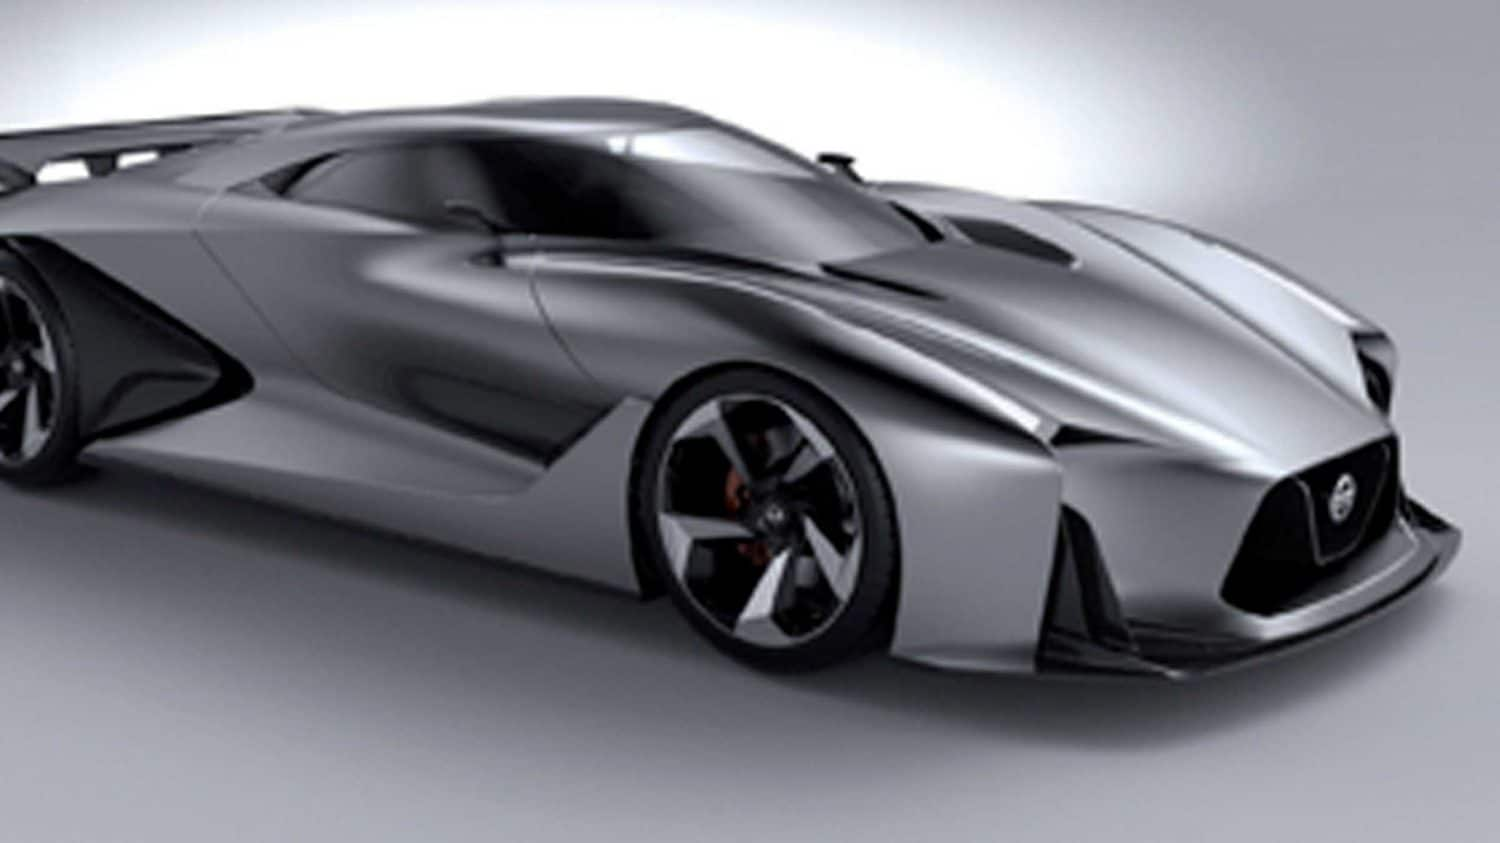 84 Best Review Nissan 2020 Sports Car Overview for Nissan 2020 Sports Car